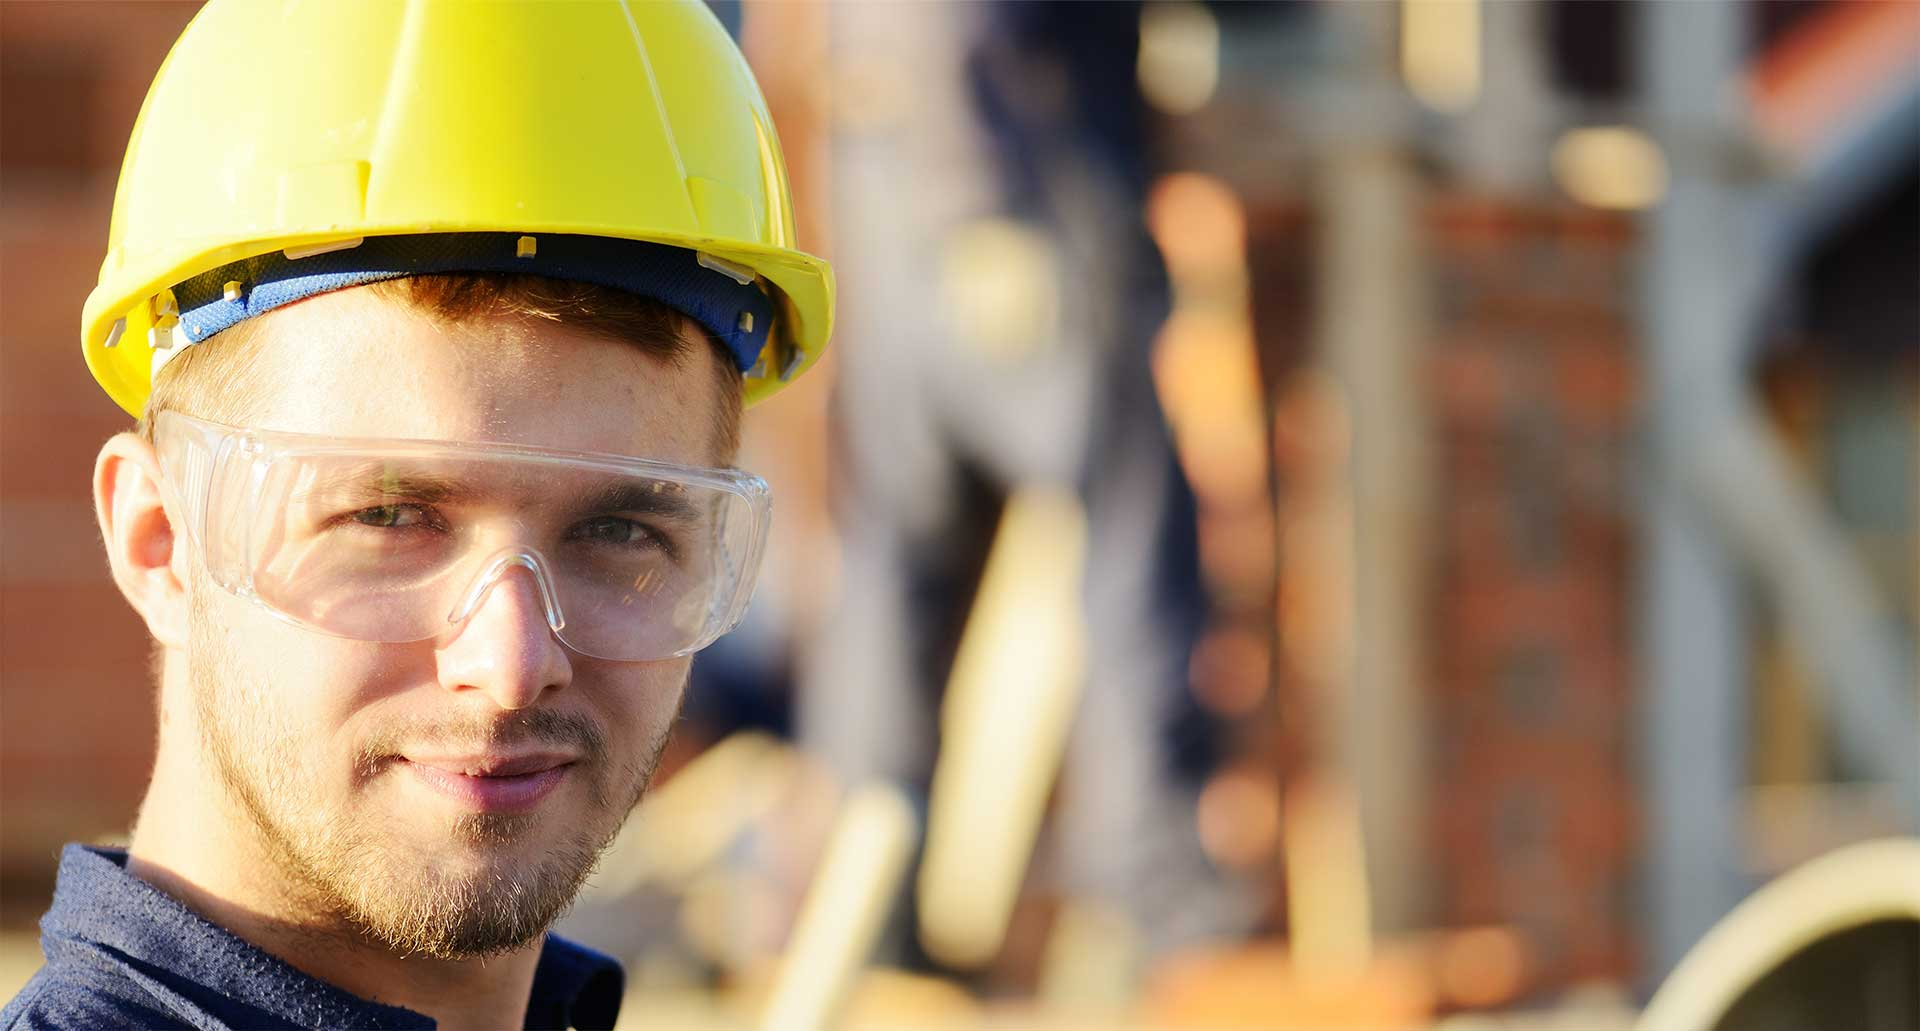 Superior Scaffolding & Insulation, Inc. Image of Construction Worker with Safety Glasses Ready to Work